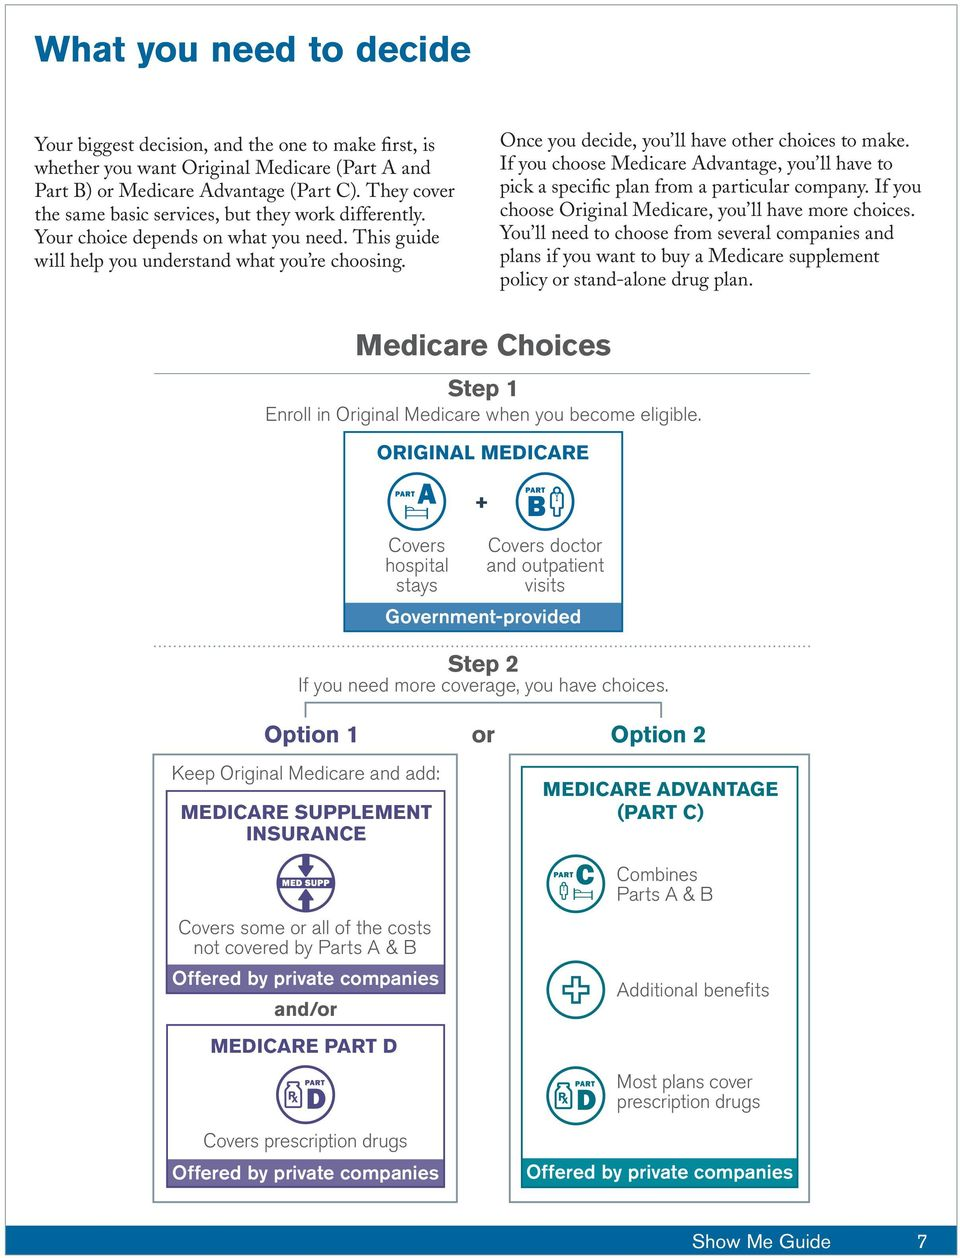 Once you decide, you ll have other choices to make. If you choose Medicare Advantage, you ll have to pick a specific plan from a particular company.